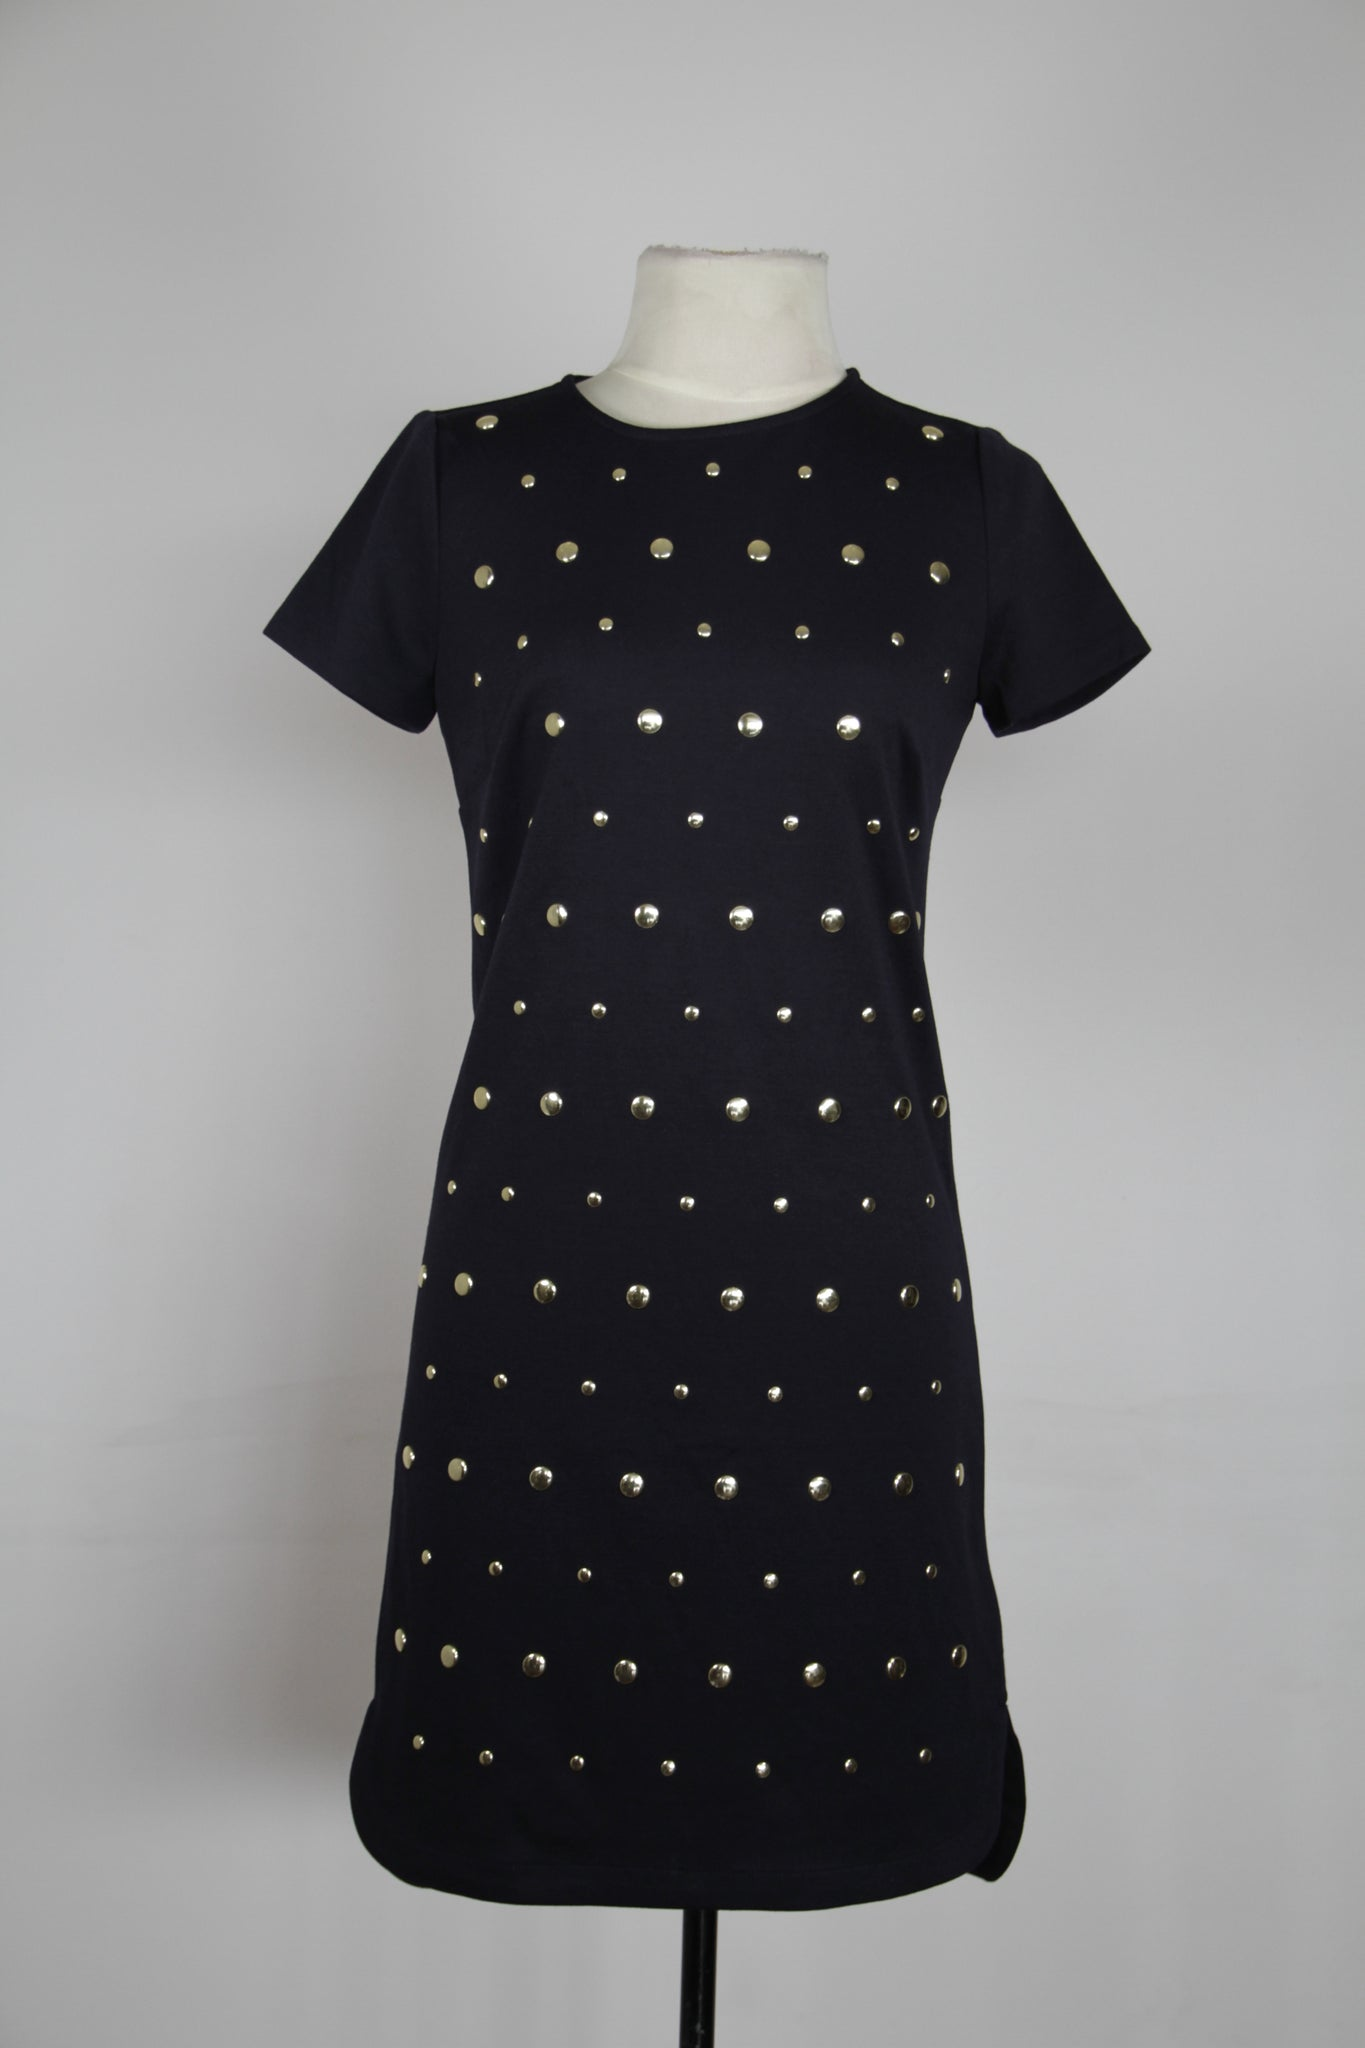 Michael Kors Black With All Over Front Gold Round Studs Shift Dress